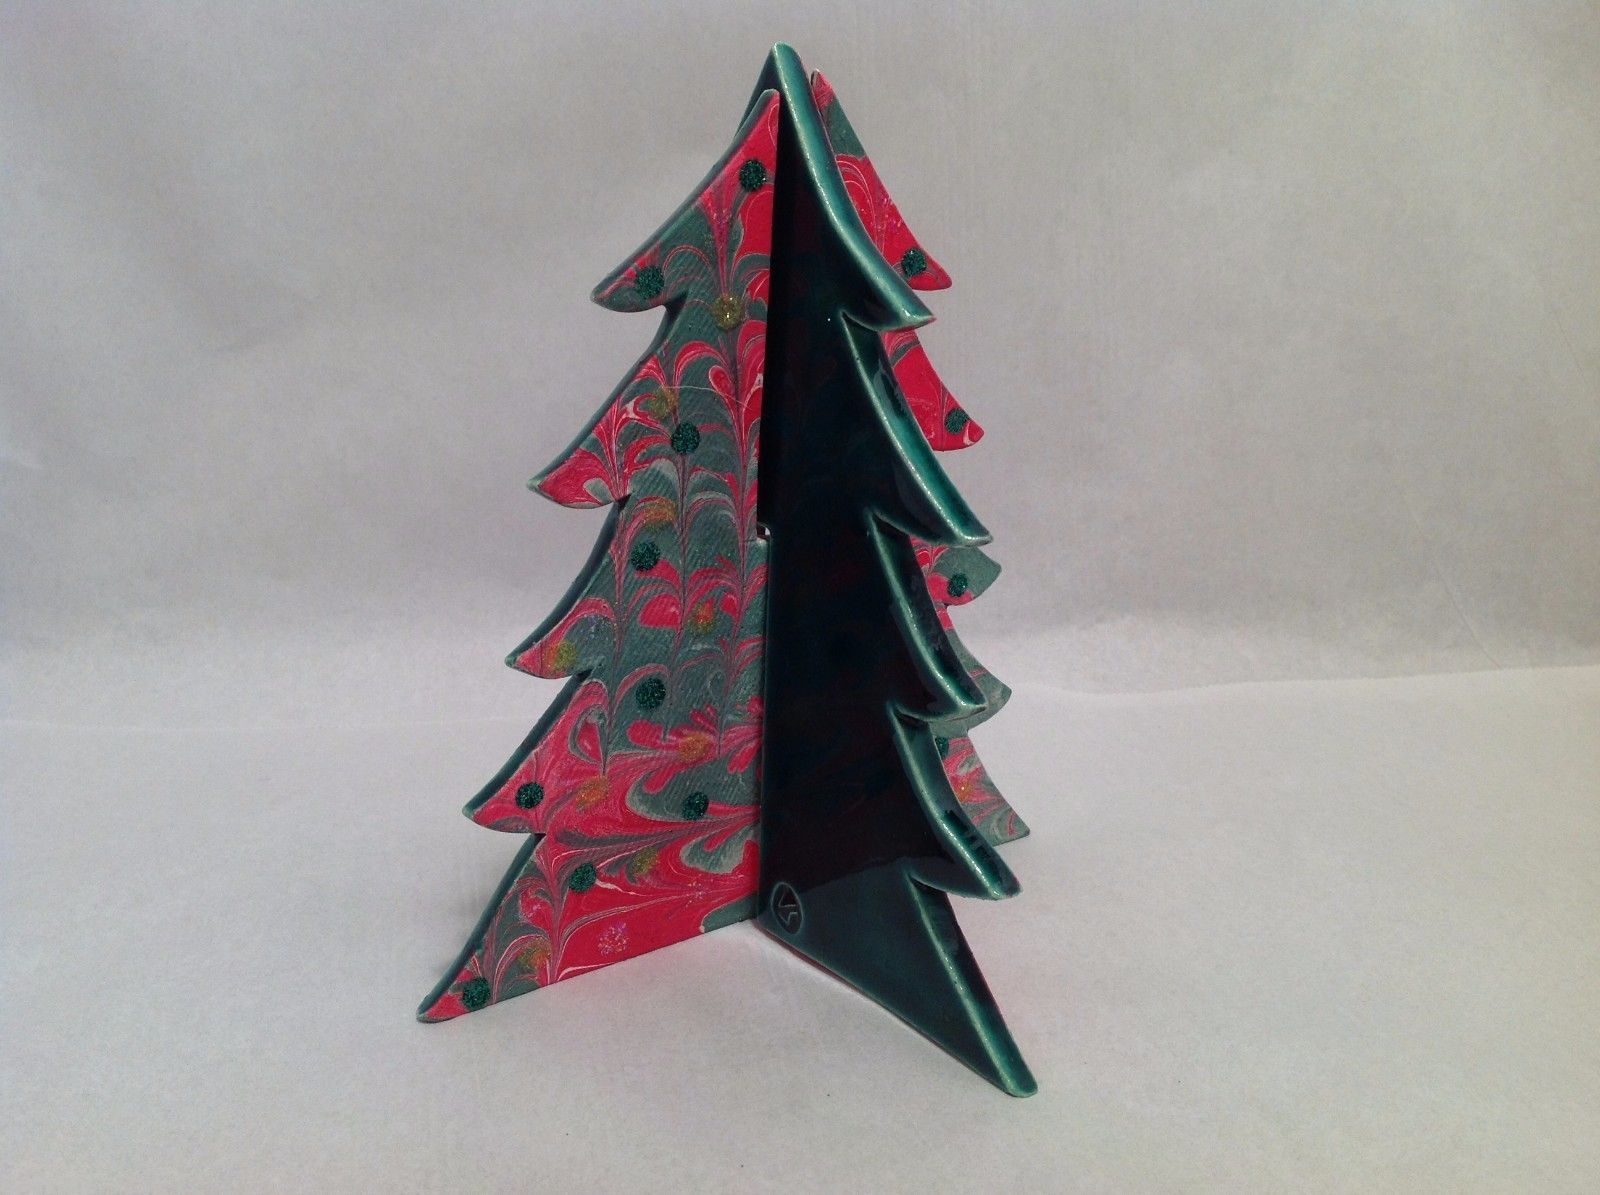 Ceramic Hand Made Christmas Tree Home Decor Great Gift from Elf Works Lane